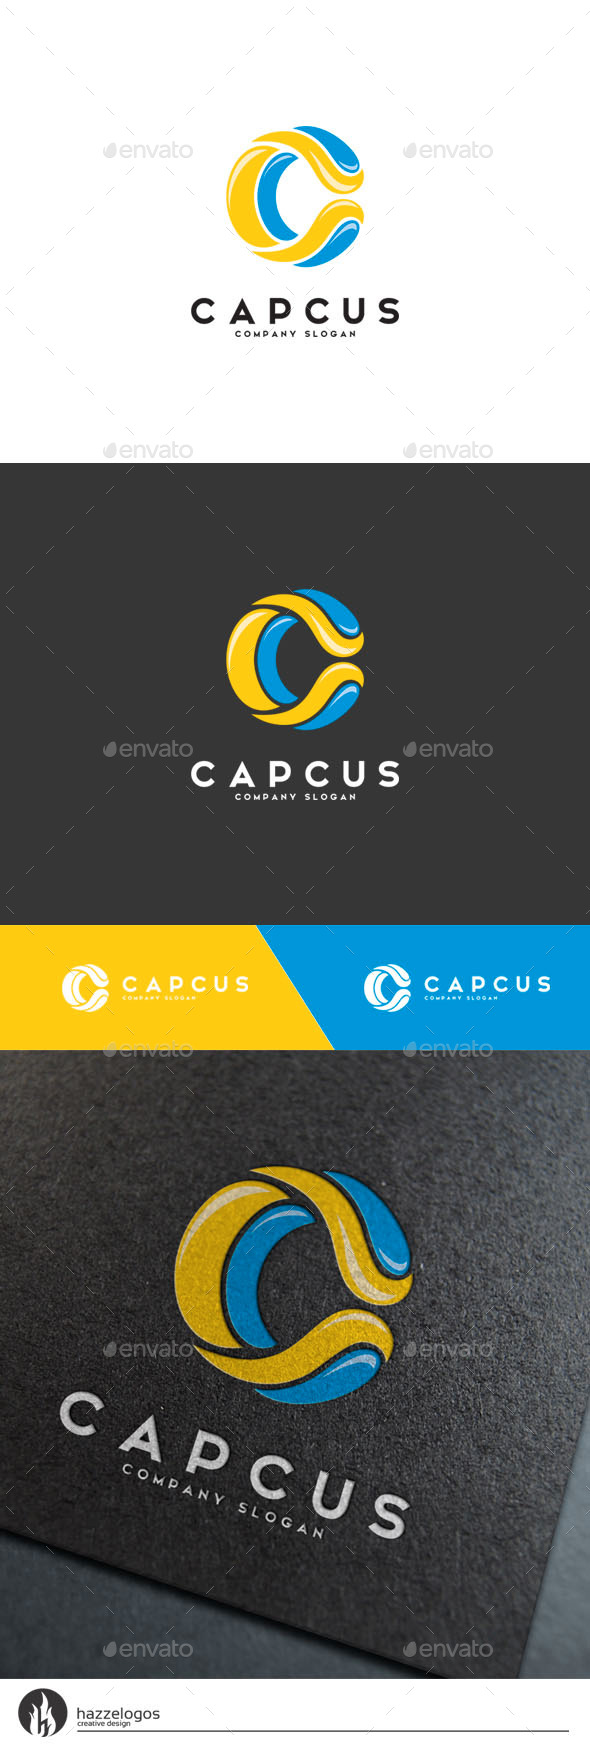 GraphicRiver Capcus Logo 10334851